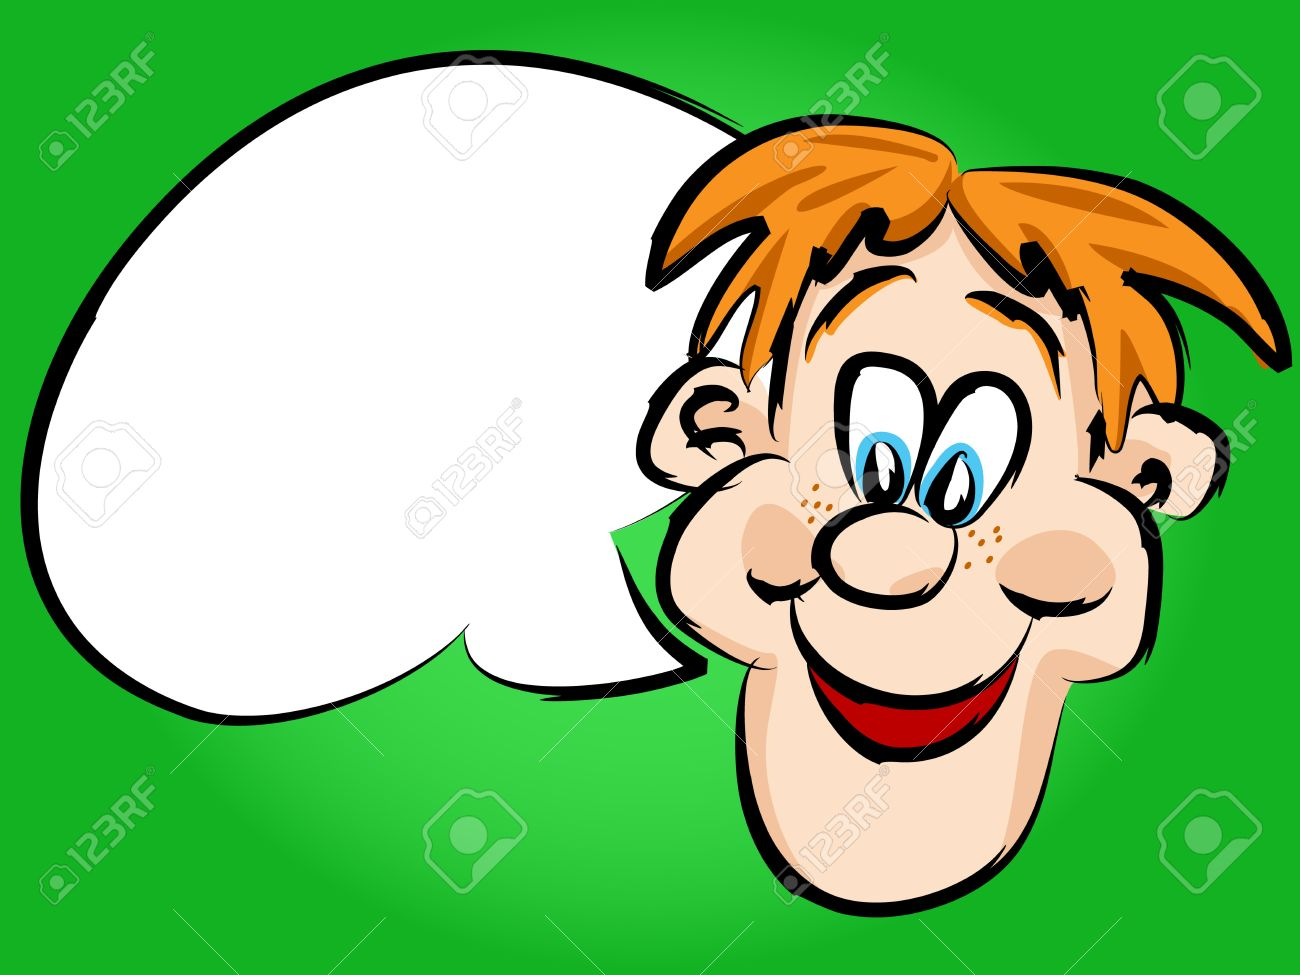 1300x975 Funny Hand Drawn Face Red Head Cartoon Man Or Guy With White